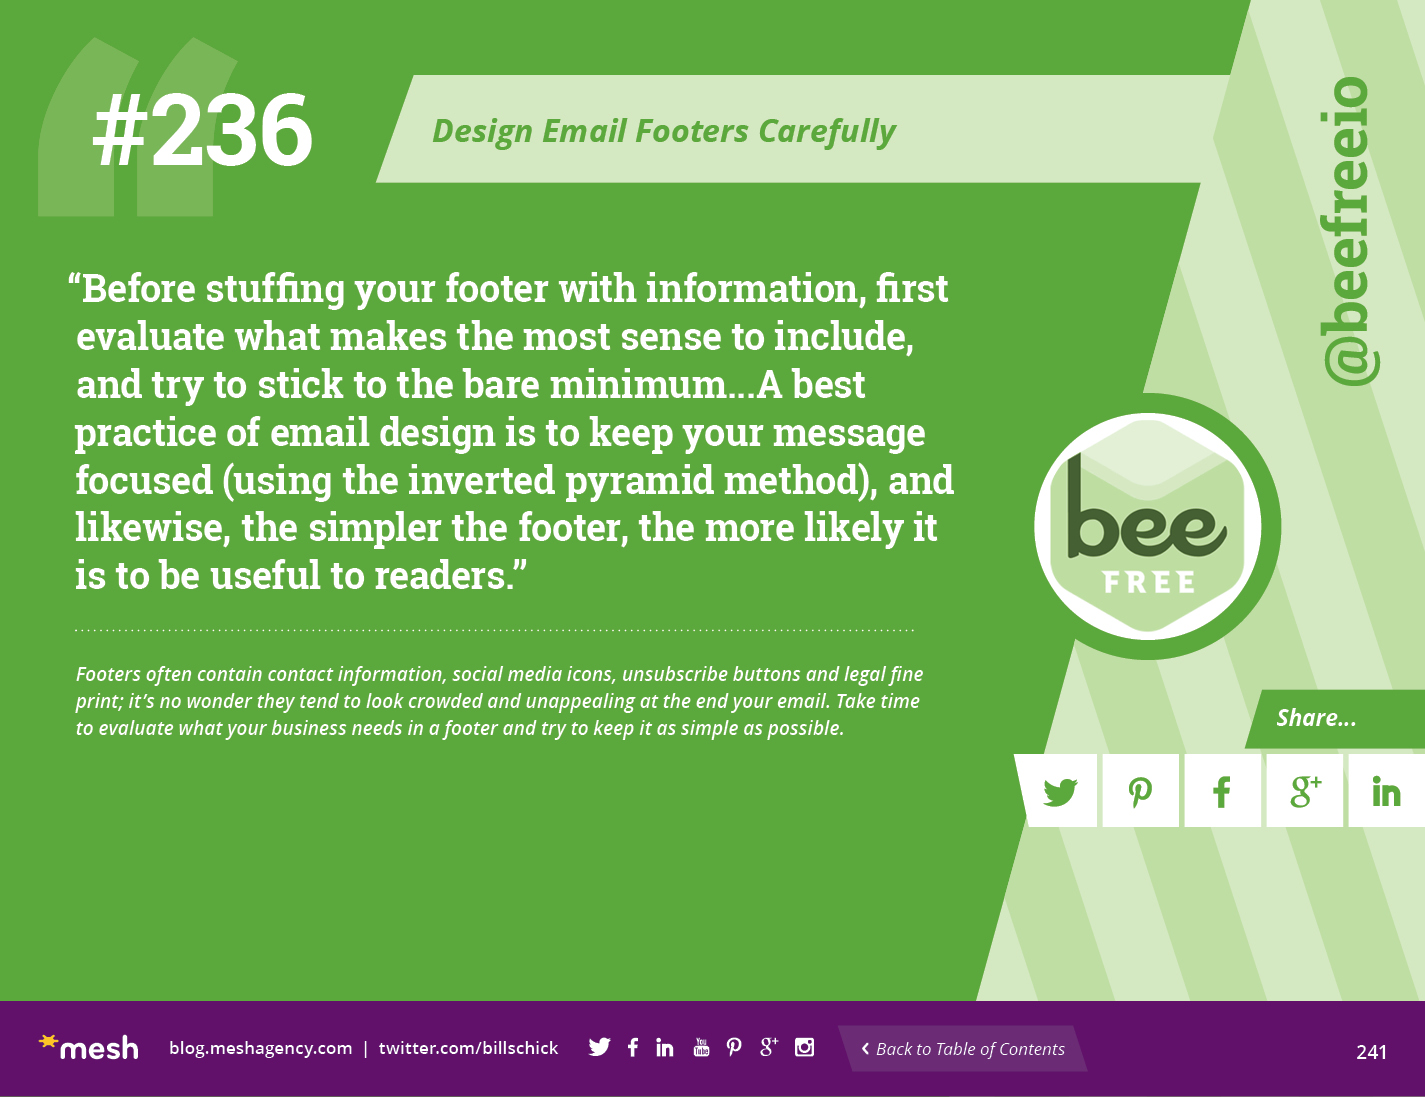 email footers